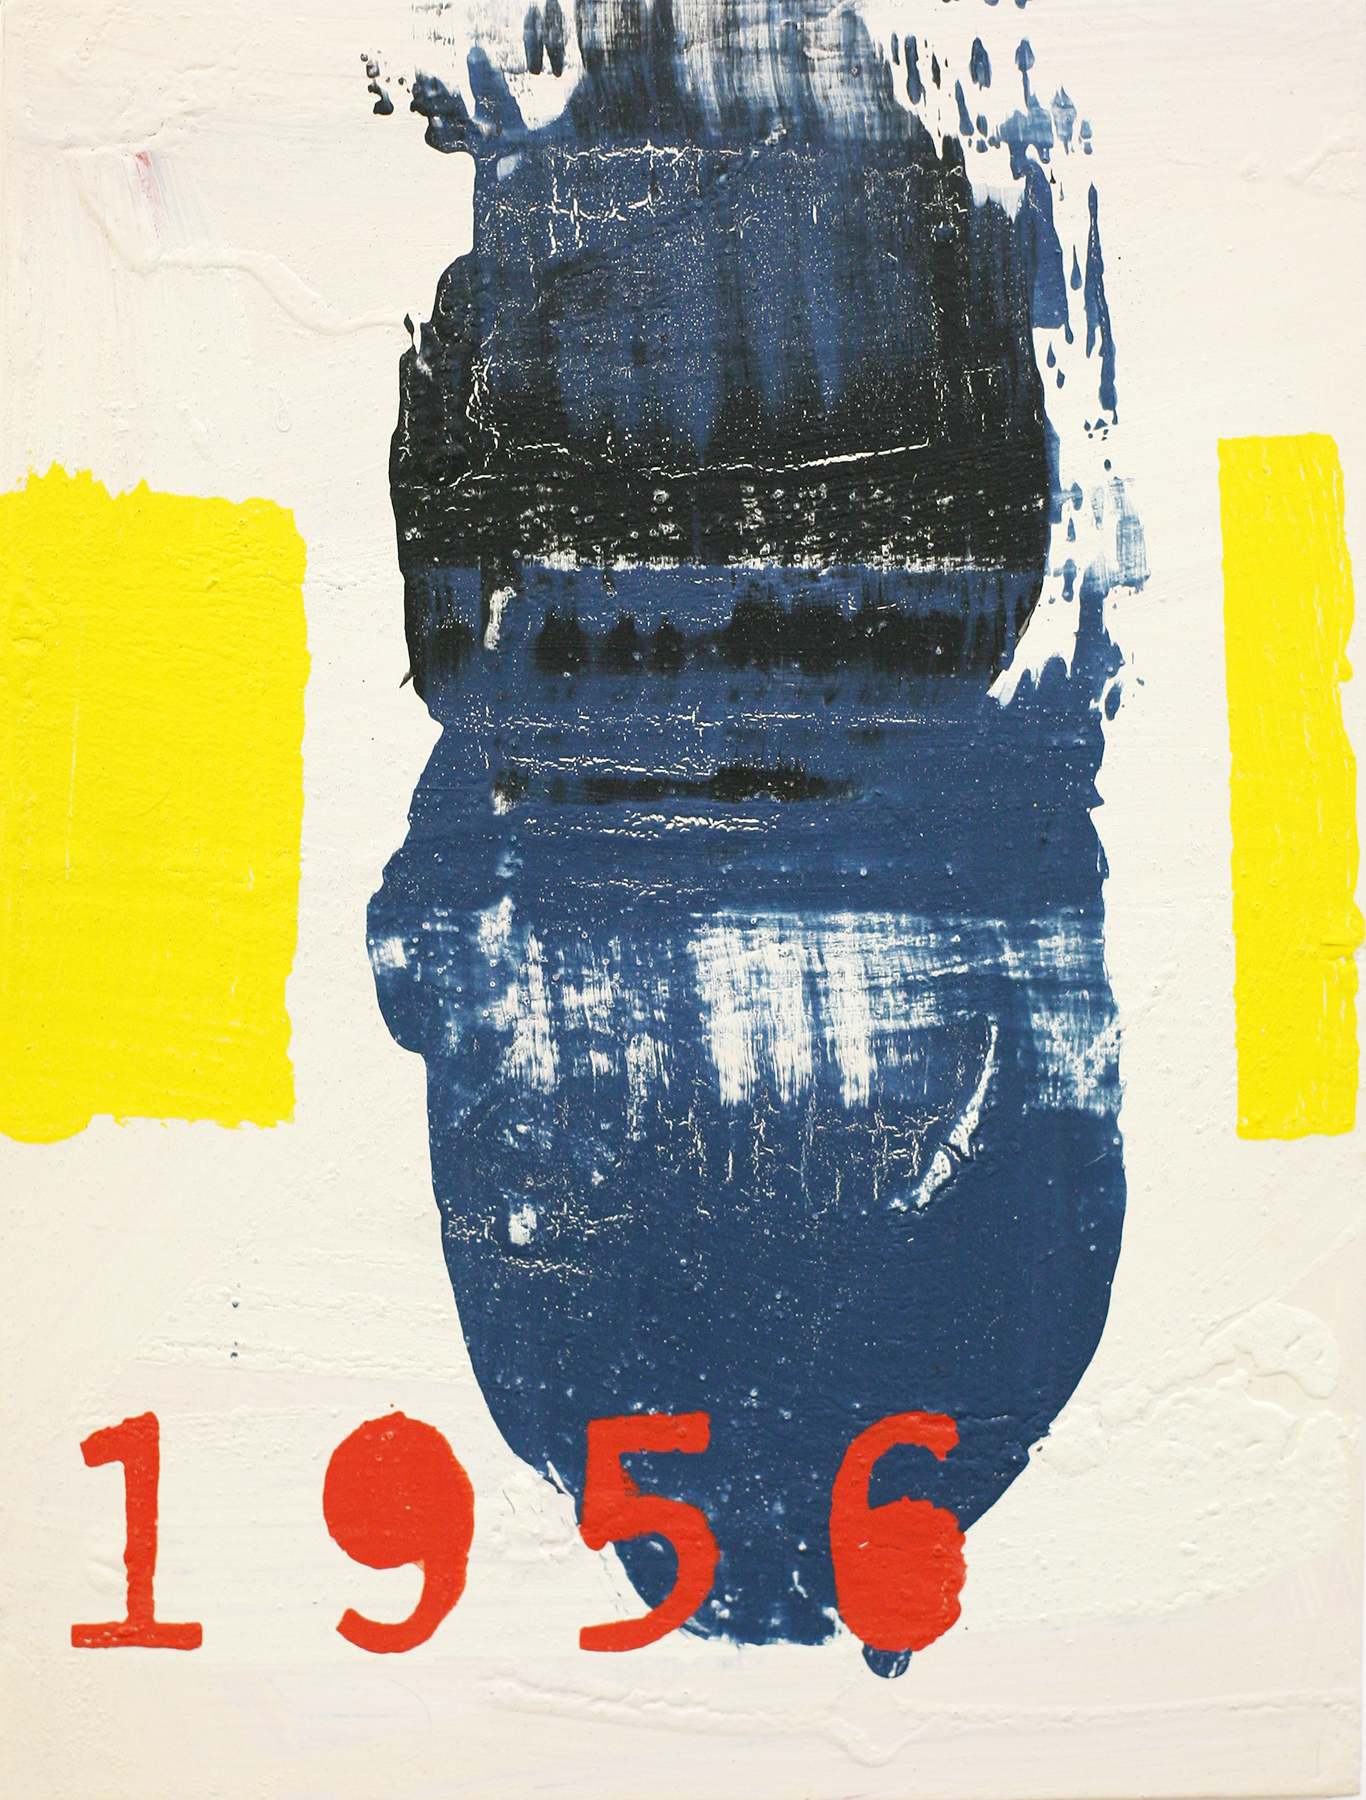 1956, acrylic on board